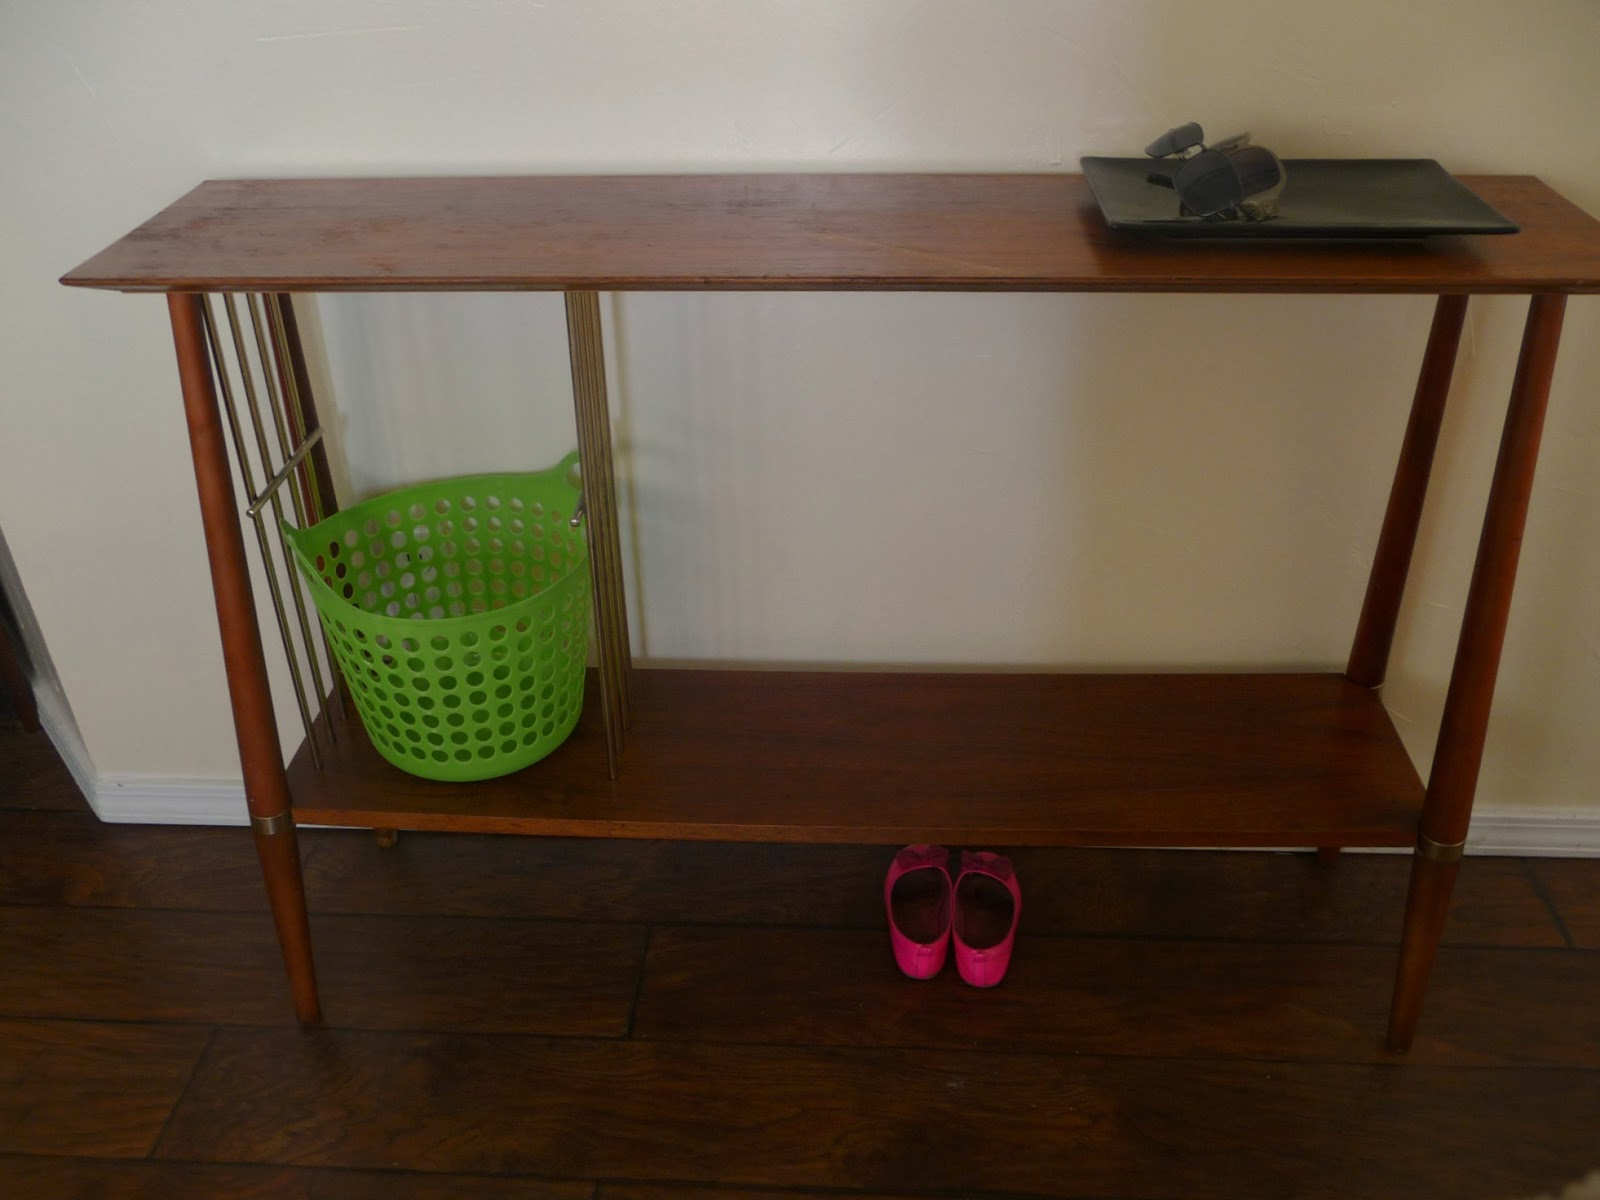 Diy Fix Scratches In Wood Furniture Mizzeliz Working For You